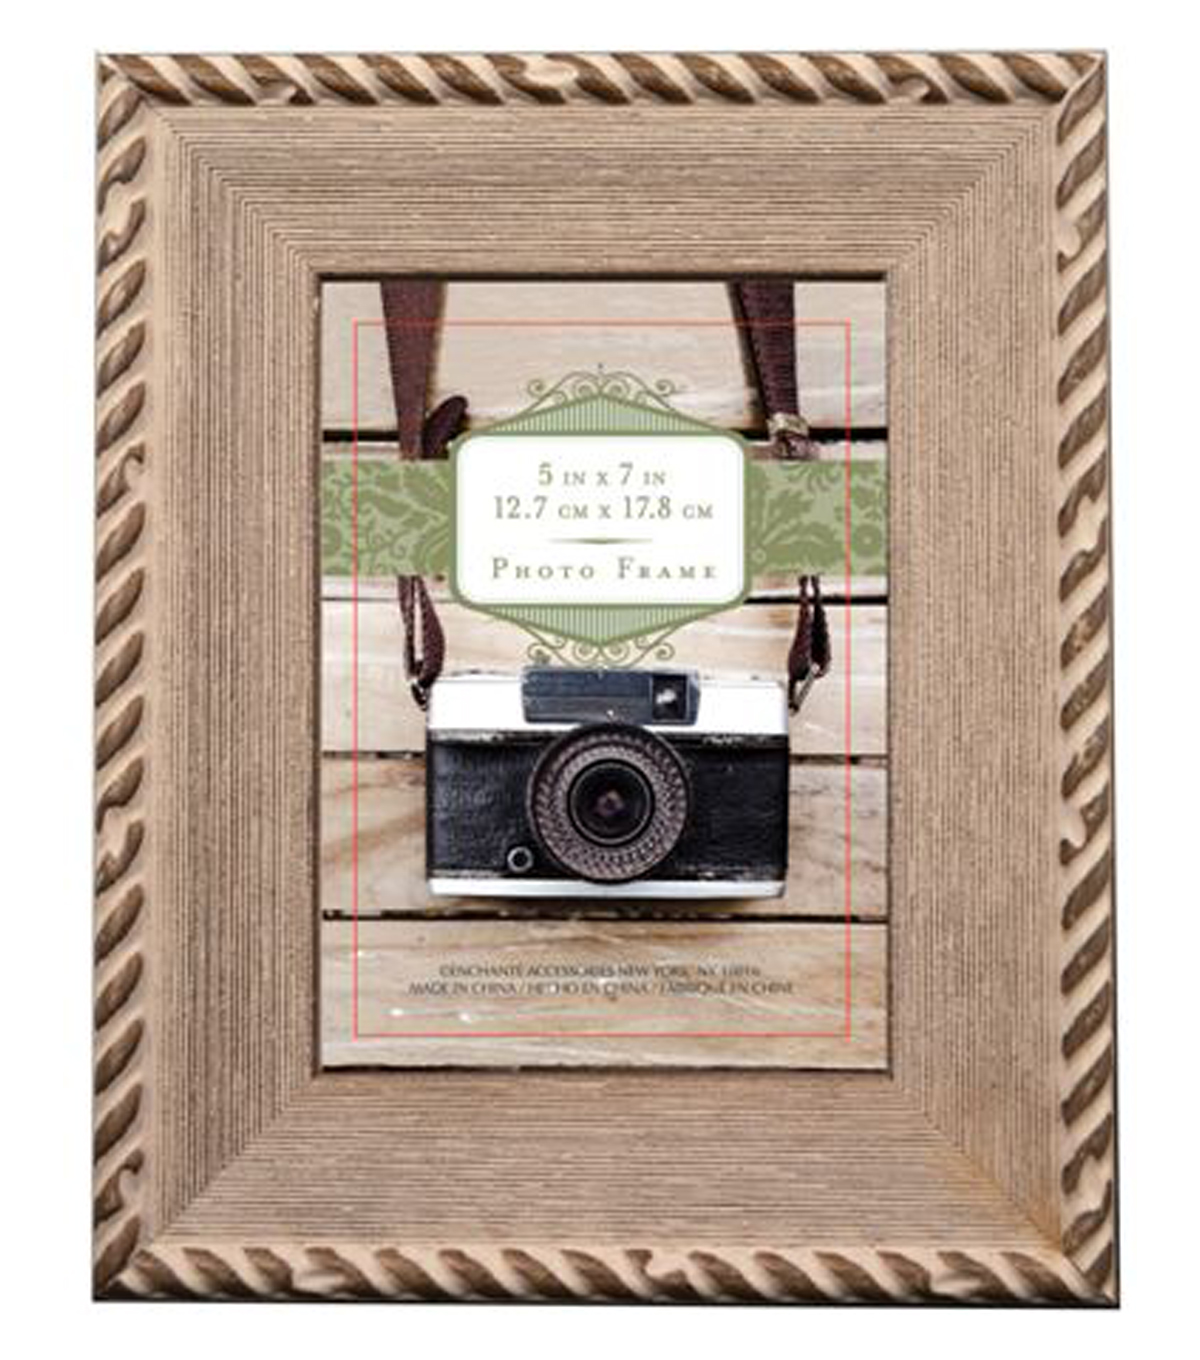 natural wood frame 5x7 brown with rope border - Natural Wood Frame